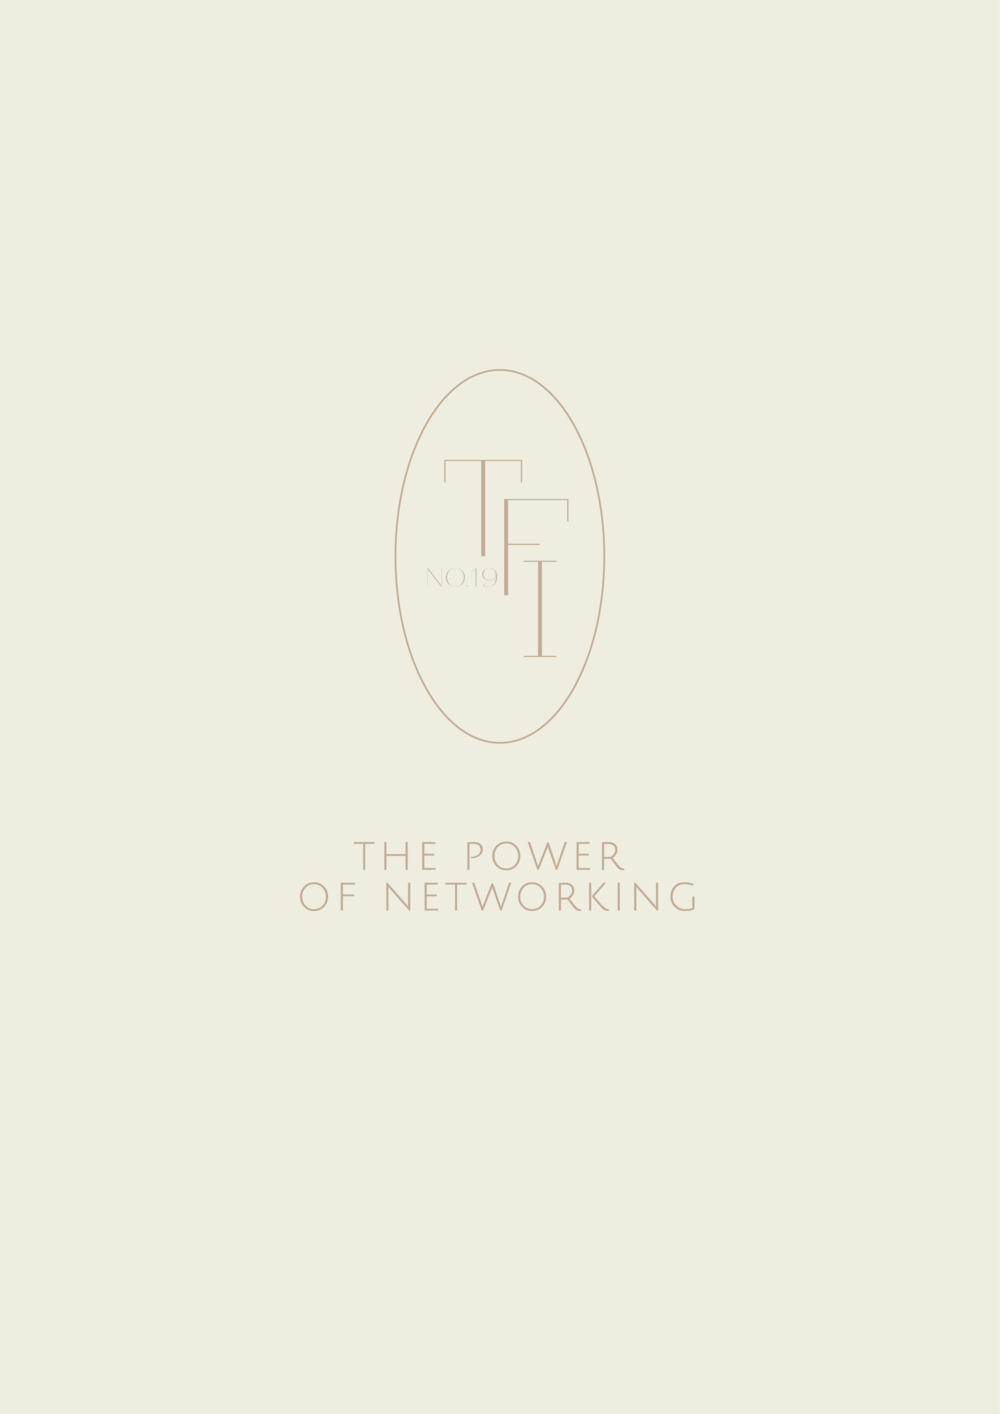 The Freelance Issue No. 19 // The Power of Networking (Phylleli Design Studio and Blog)